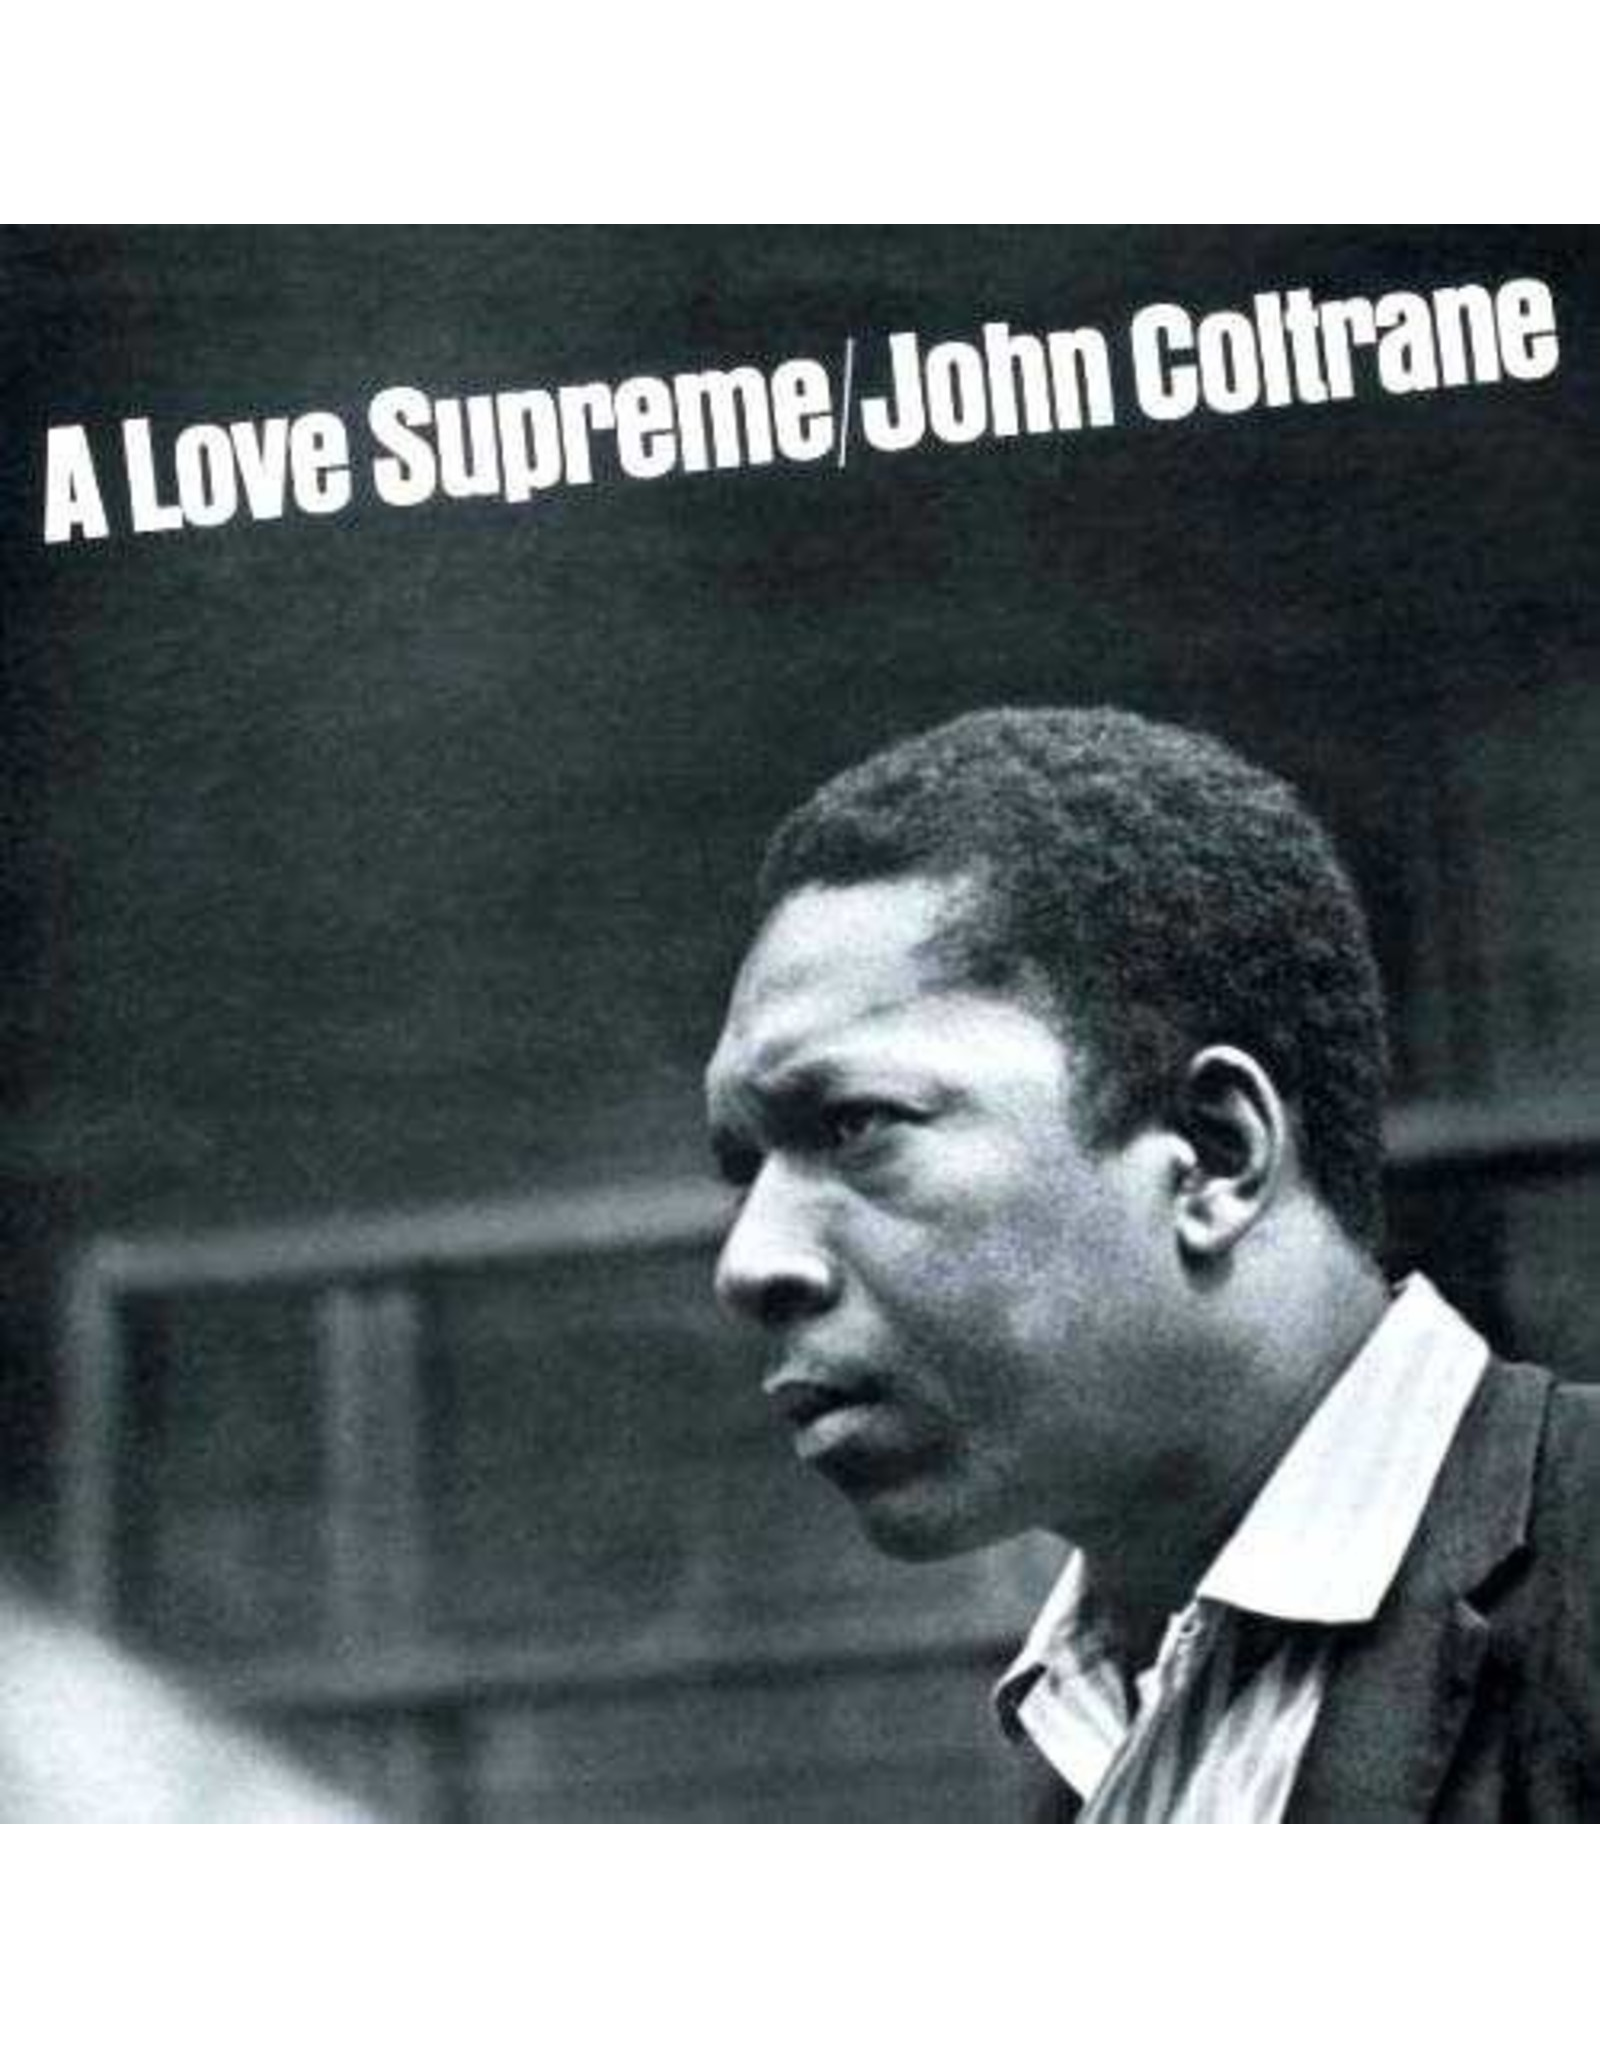 New Vinyl John Coltrane - A Love Supreme LP